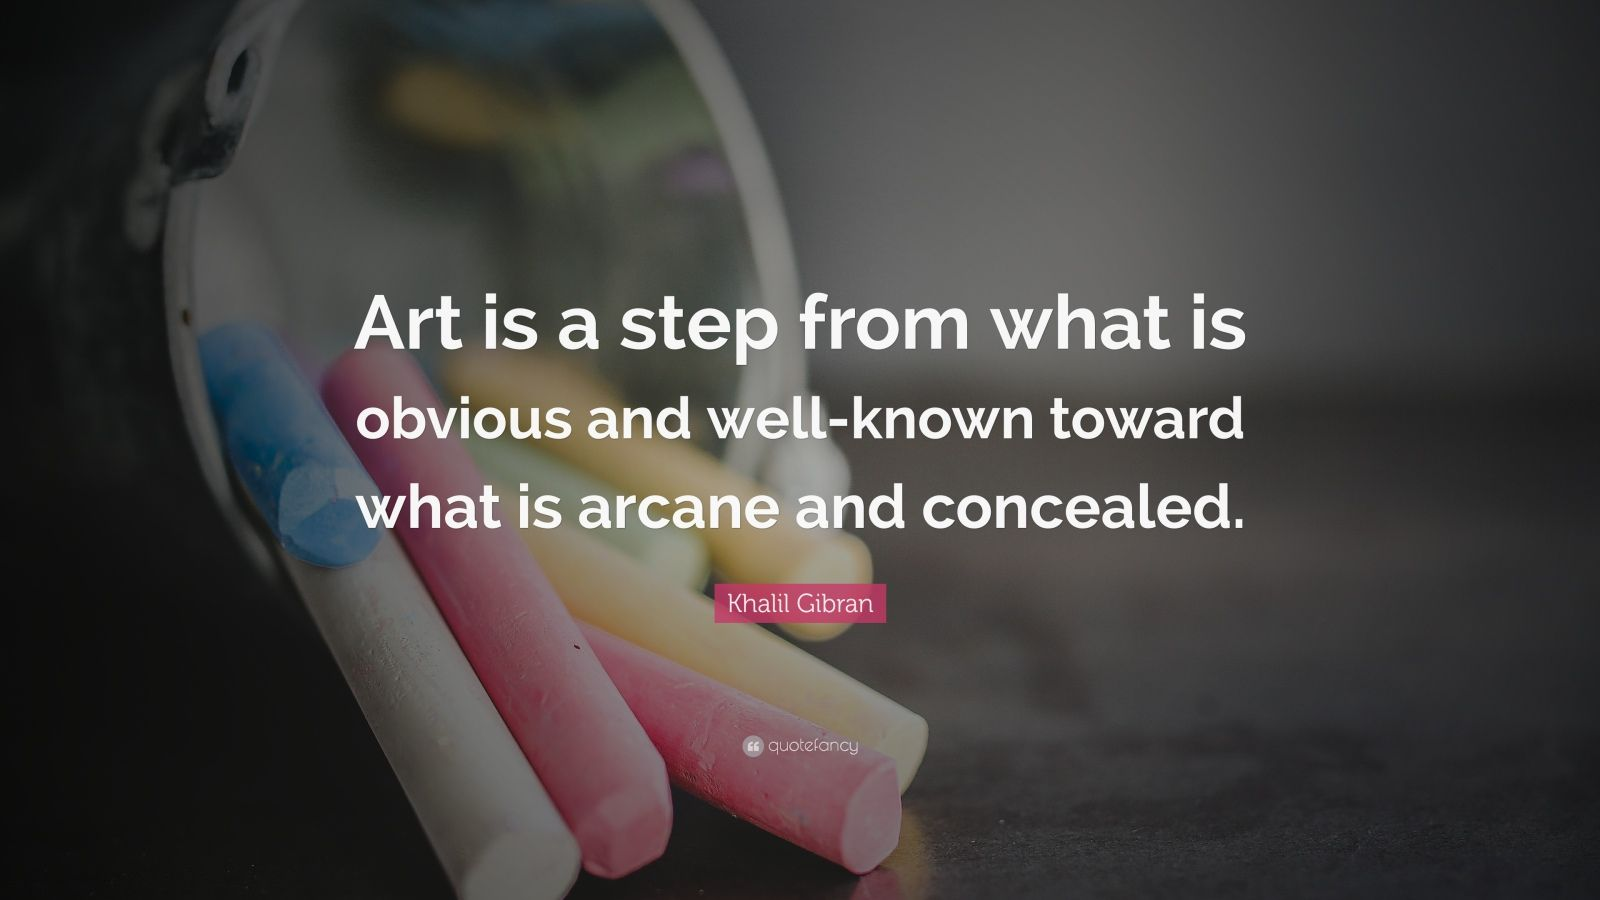 """Khalil Gibran Quote: """"Art is a step from what is obvious and well-known toward what is arcane and concealed."""""""